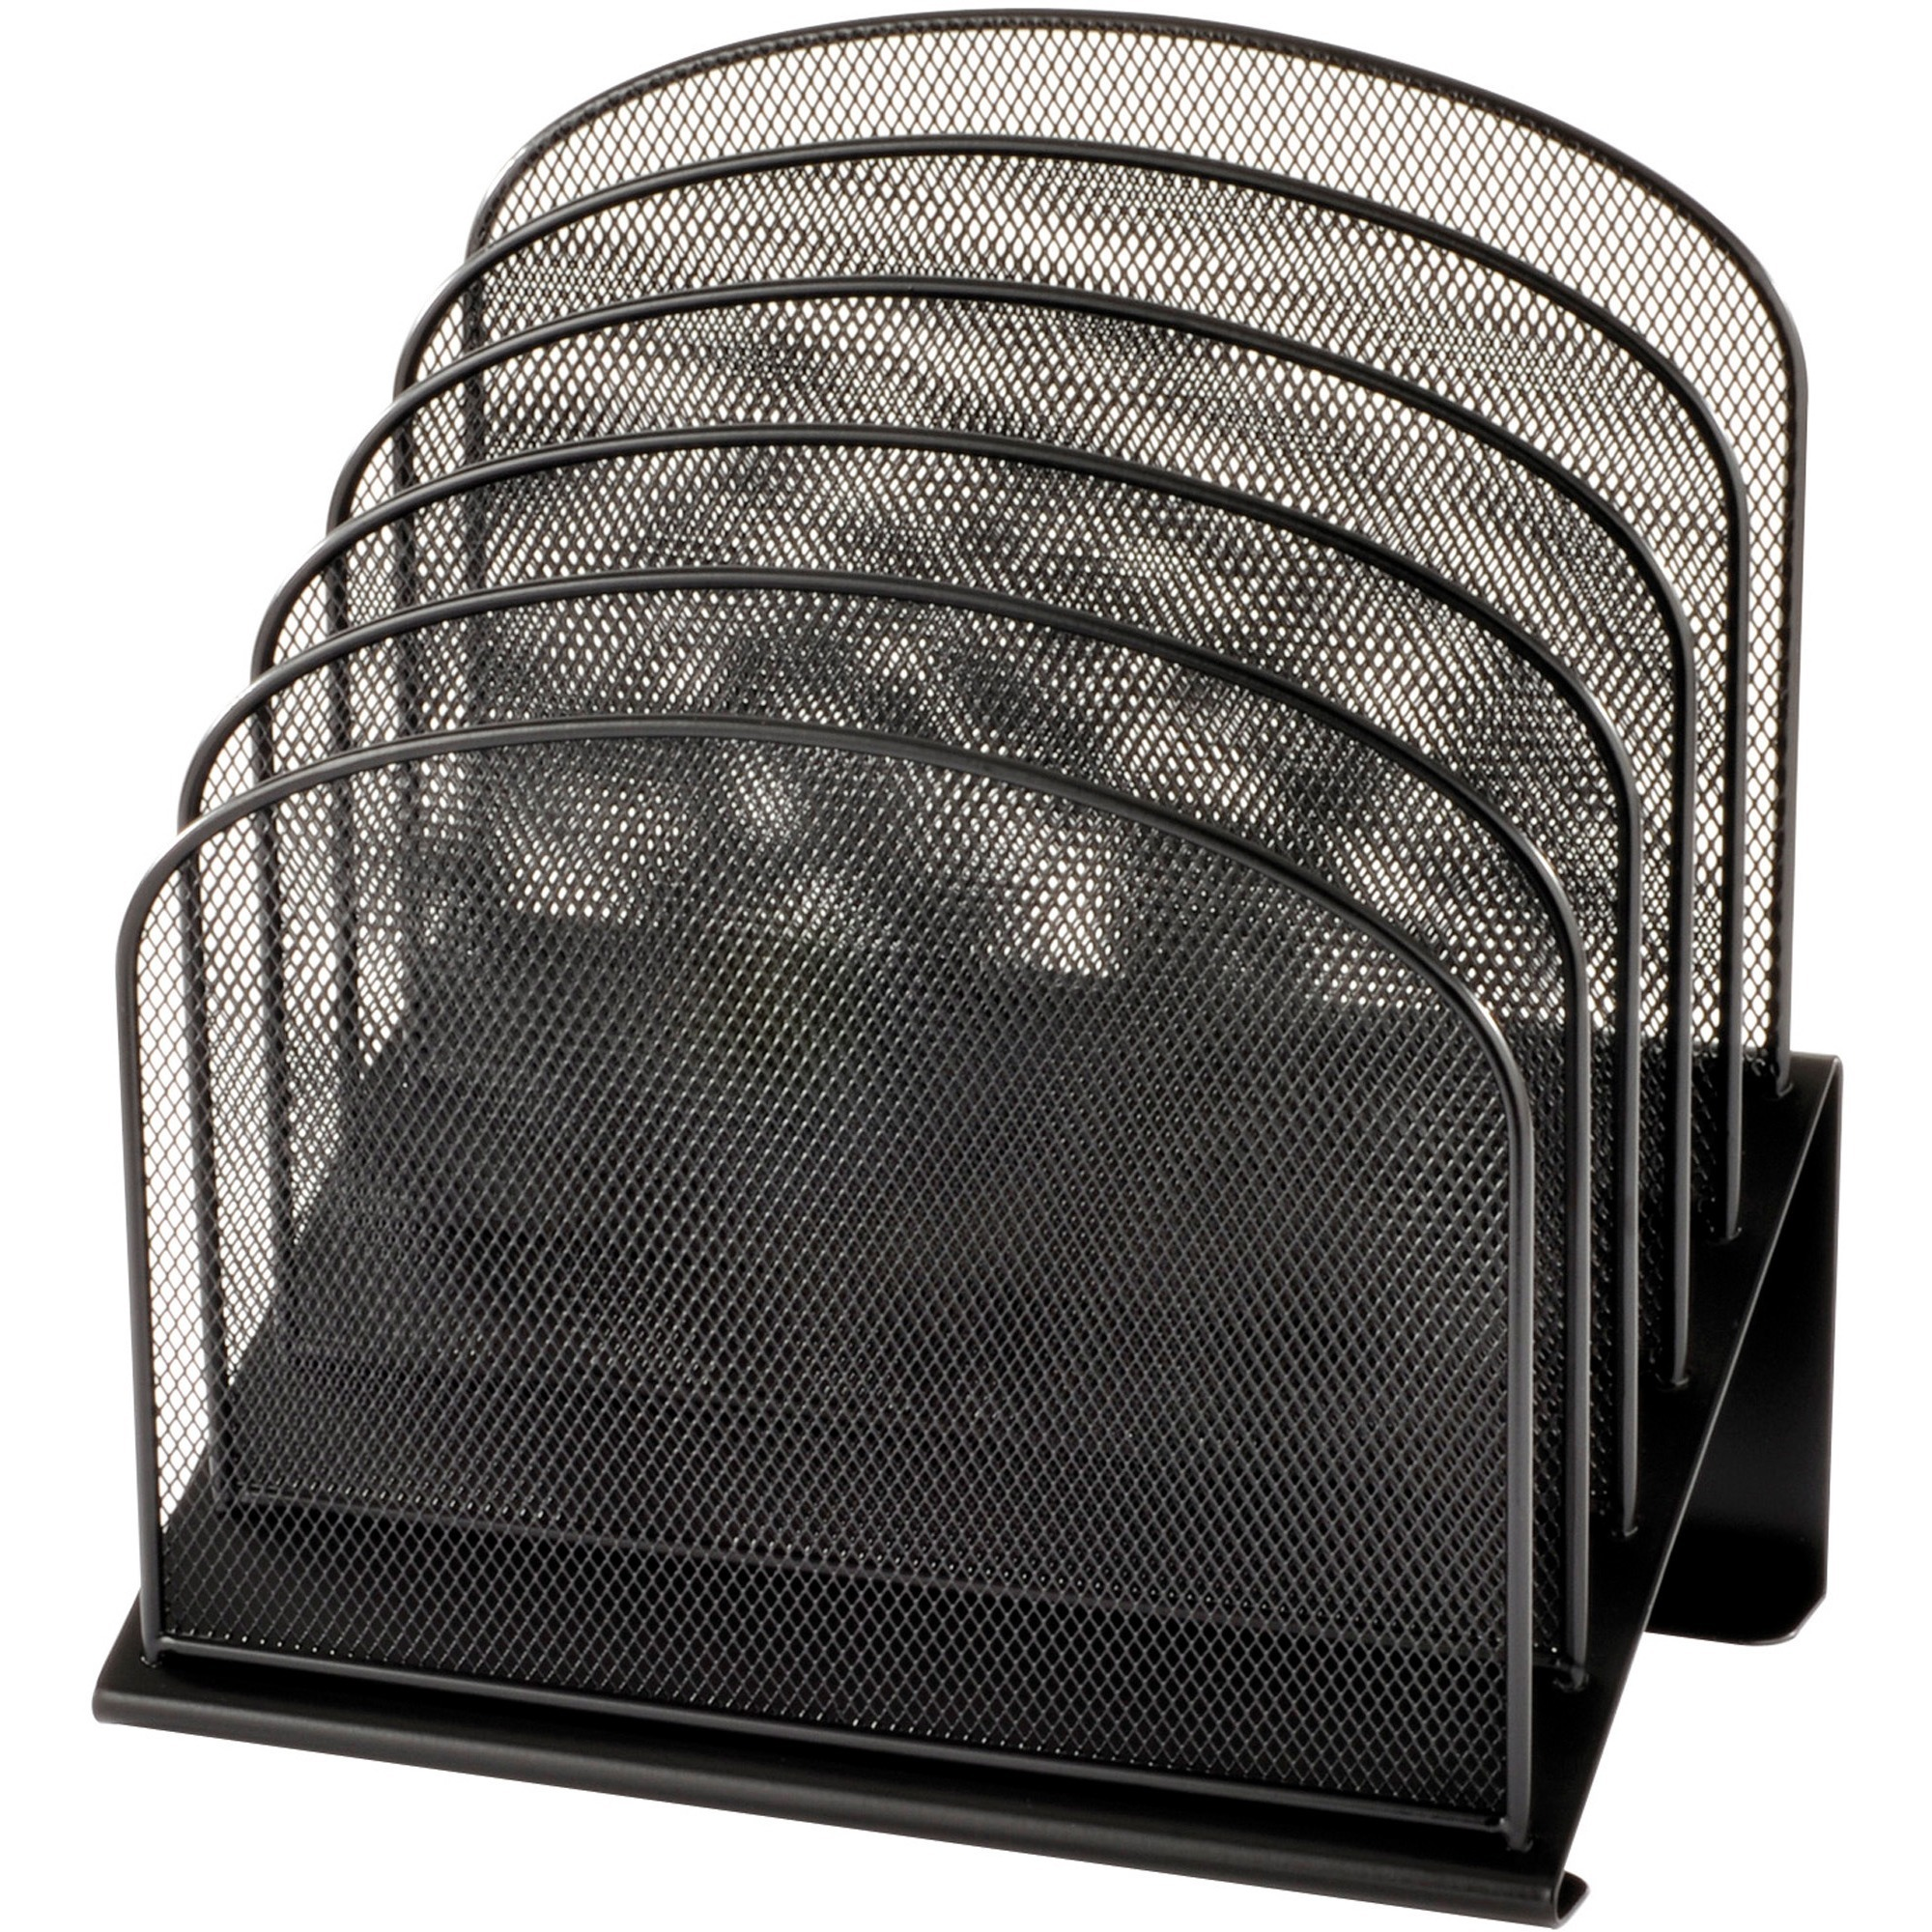 Safco Onyx Wire Mesh Desktop Organizer 5 Compartment S 1 25 40 Mm 12 Height X 11 3 Width 7 Depth Black Steel 1each